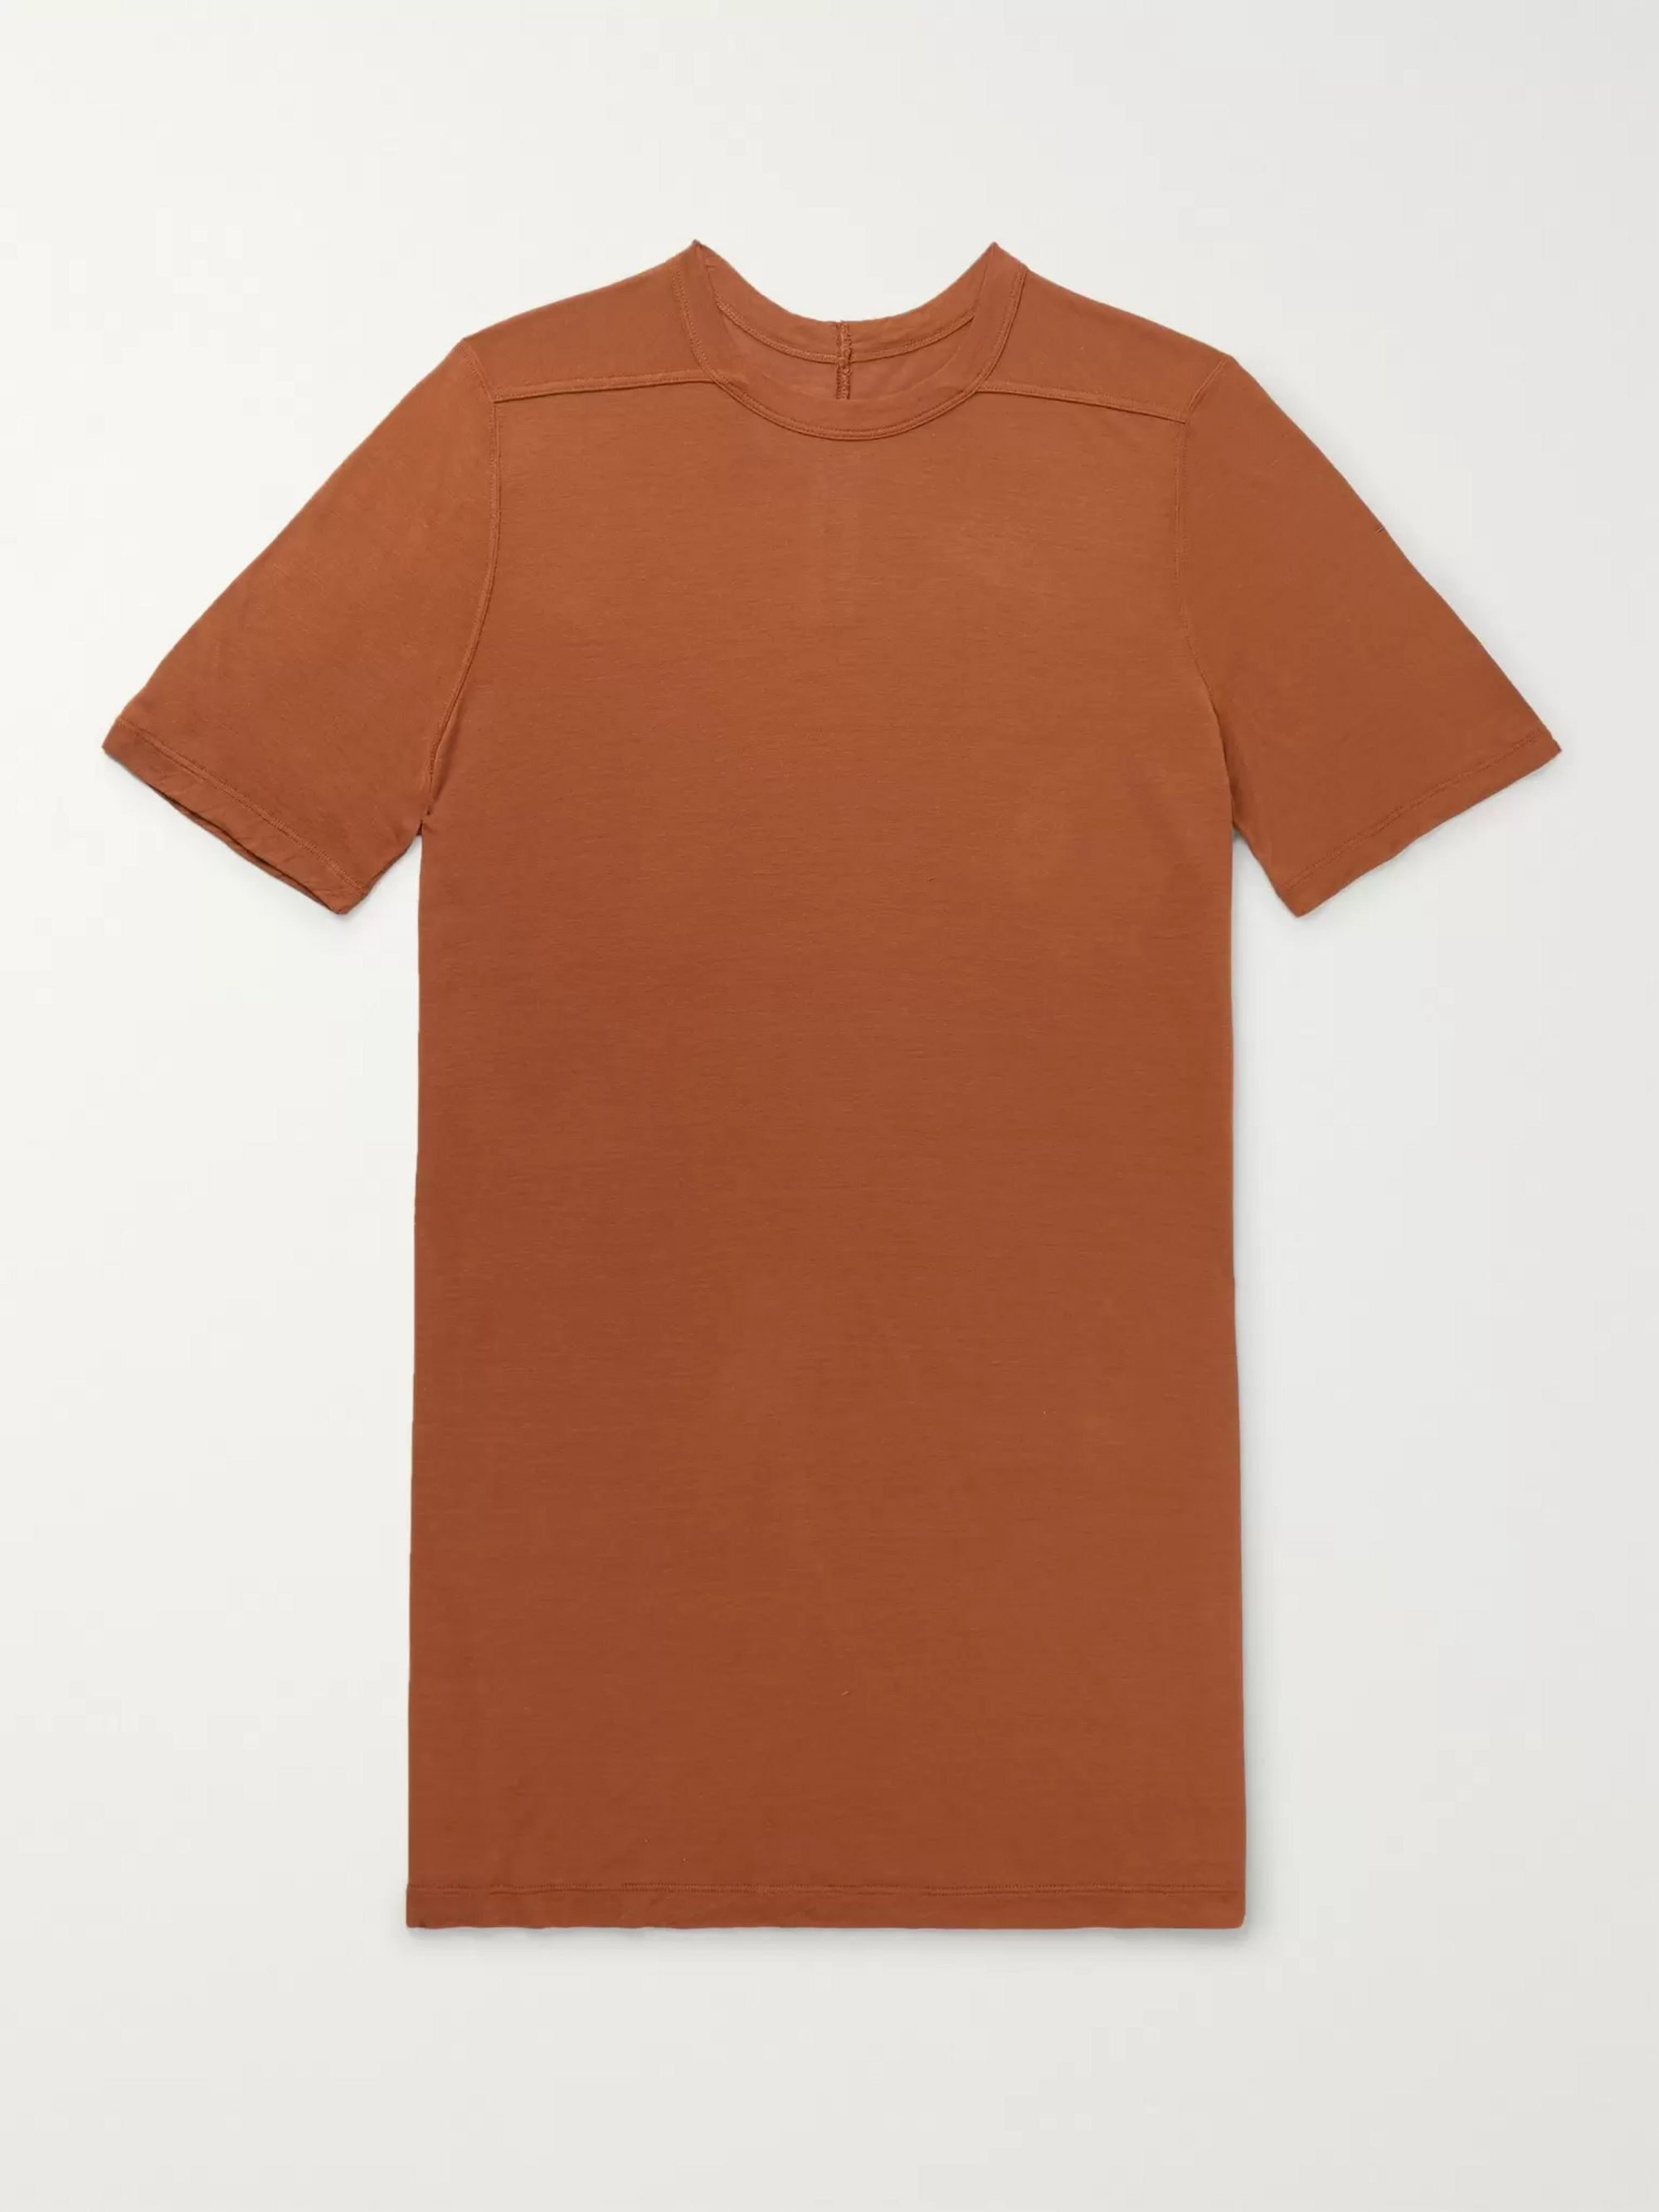 Level Stretch Jersey T Shirt by Rick Owens